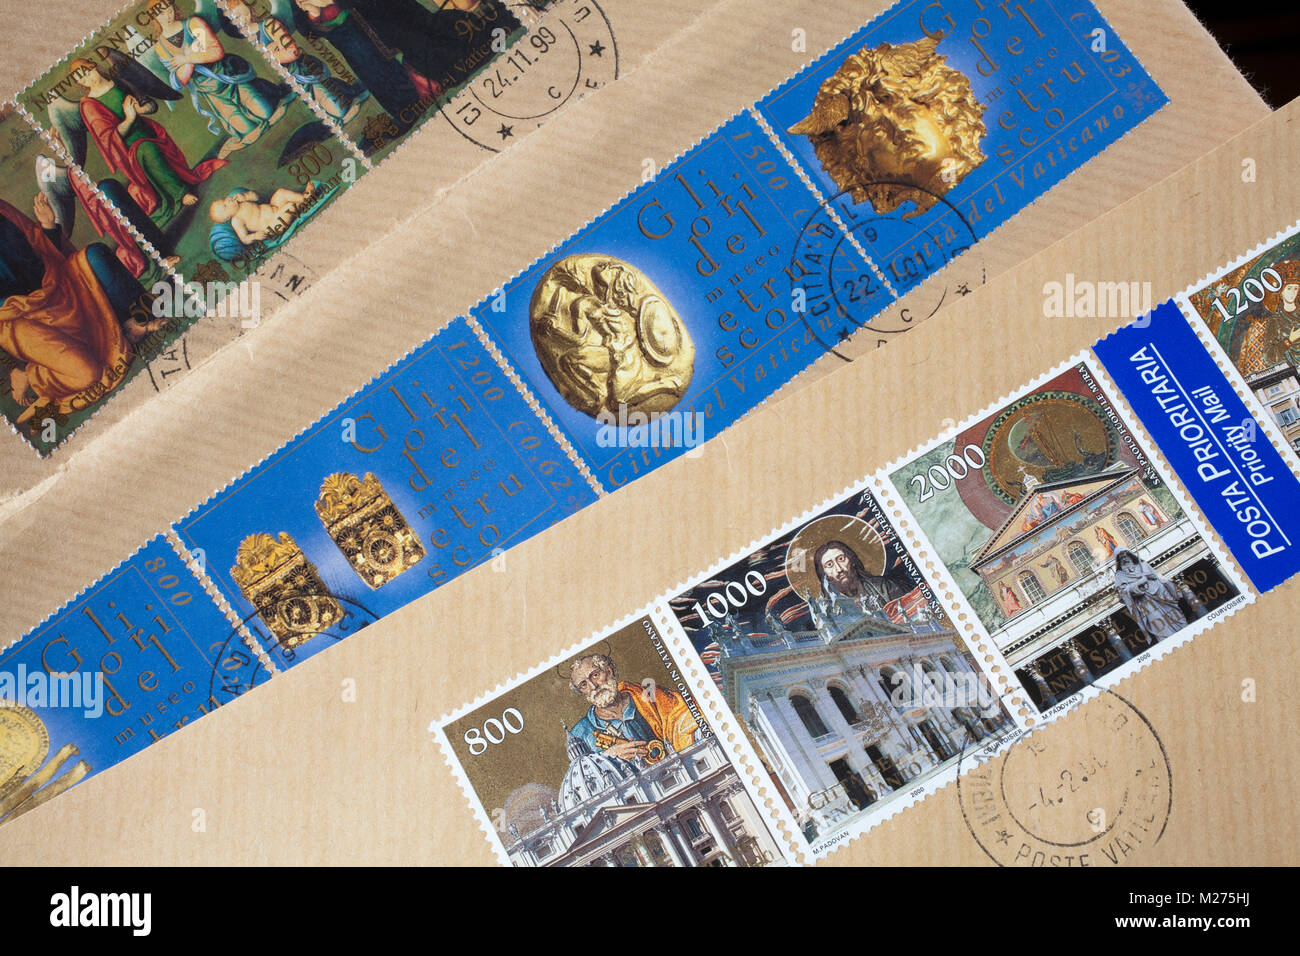 Stamps from the Vatican on a letter, Stamped, Vatican, Italy, Europe, Gestempelte Briefmarken aus dem Vatikan, Stock Photo